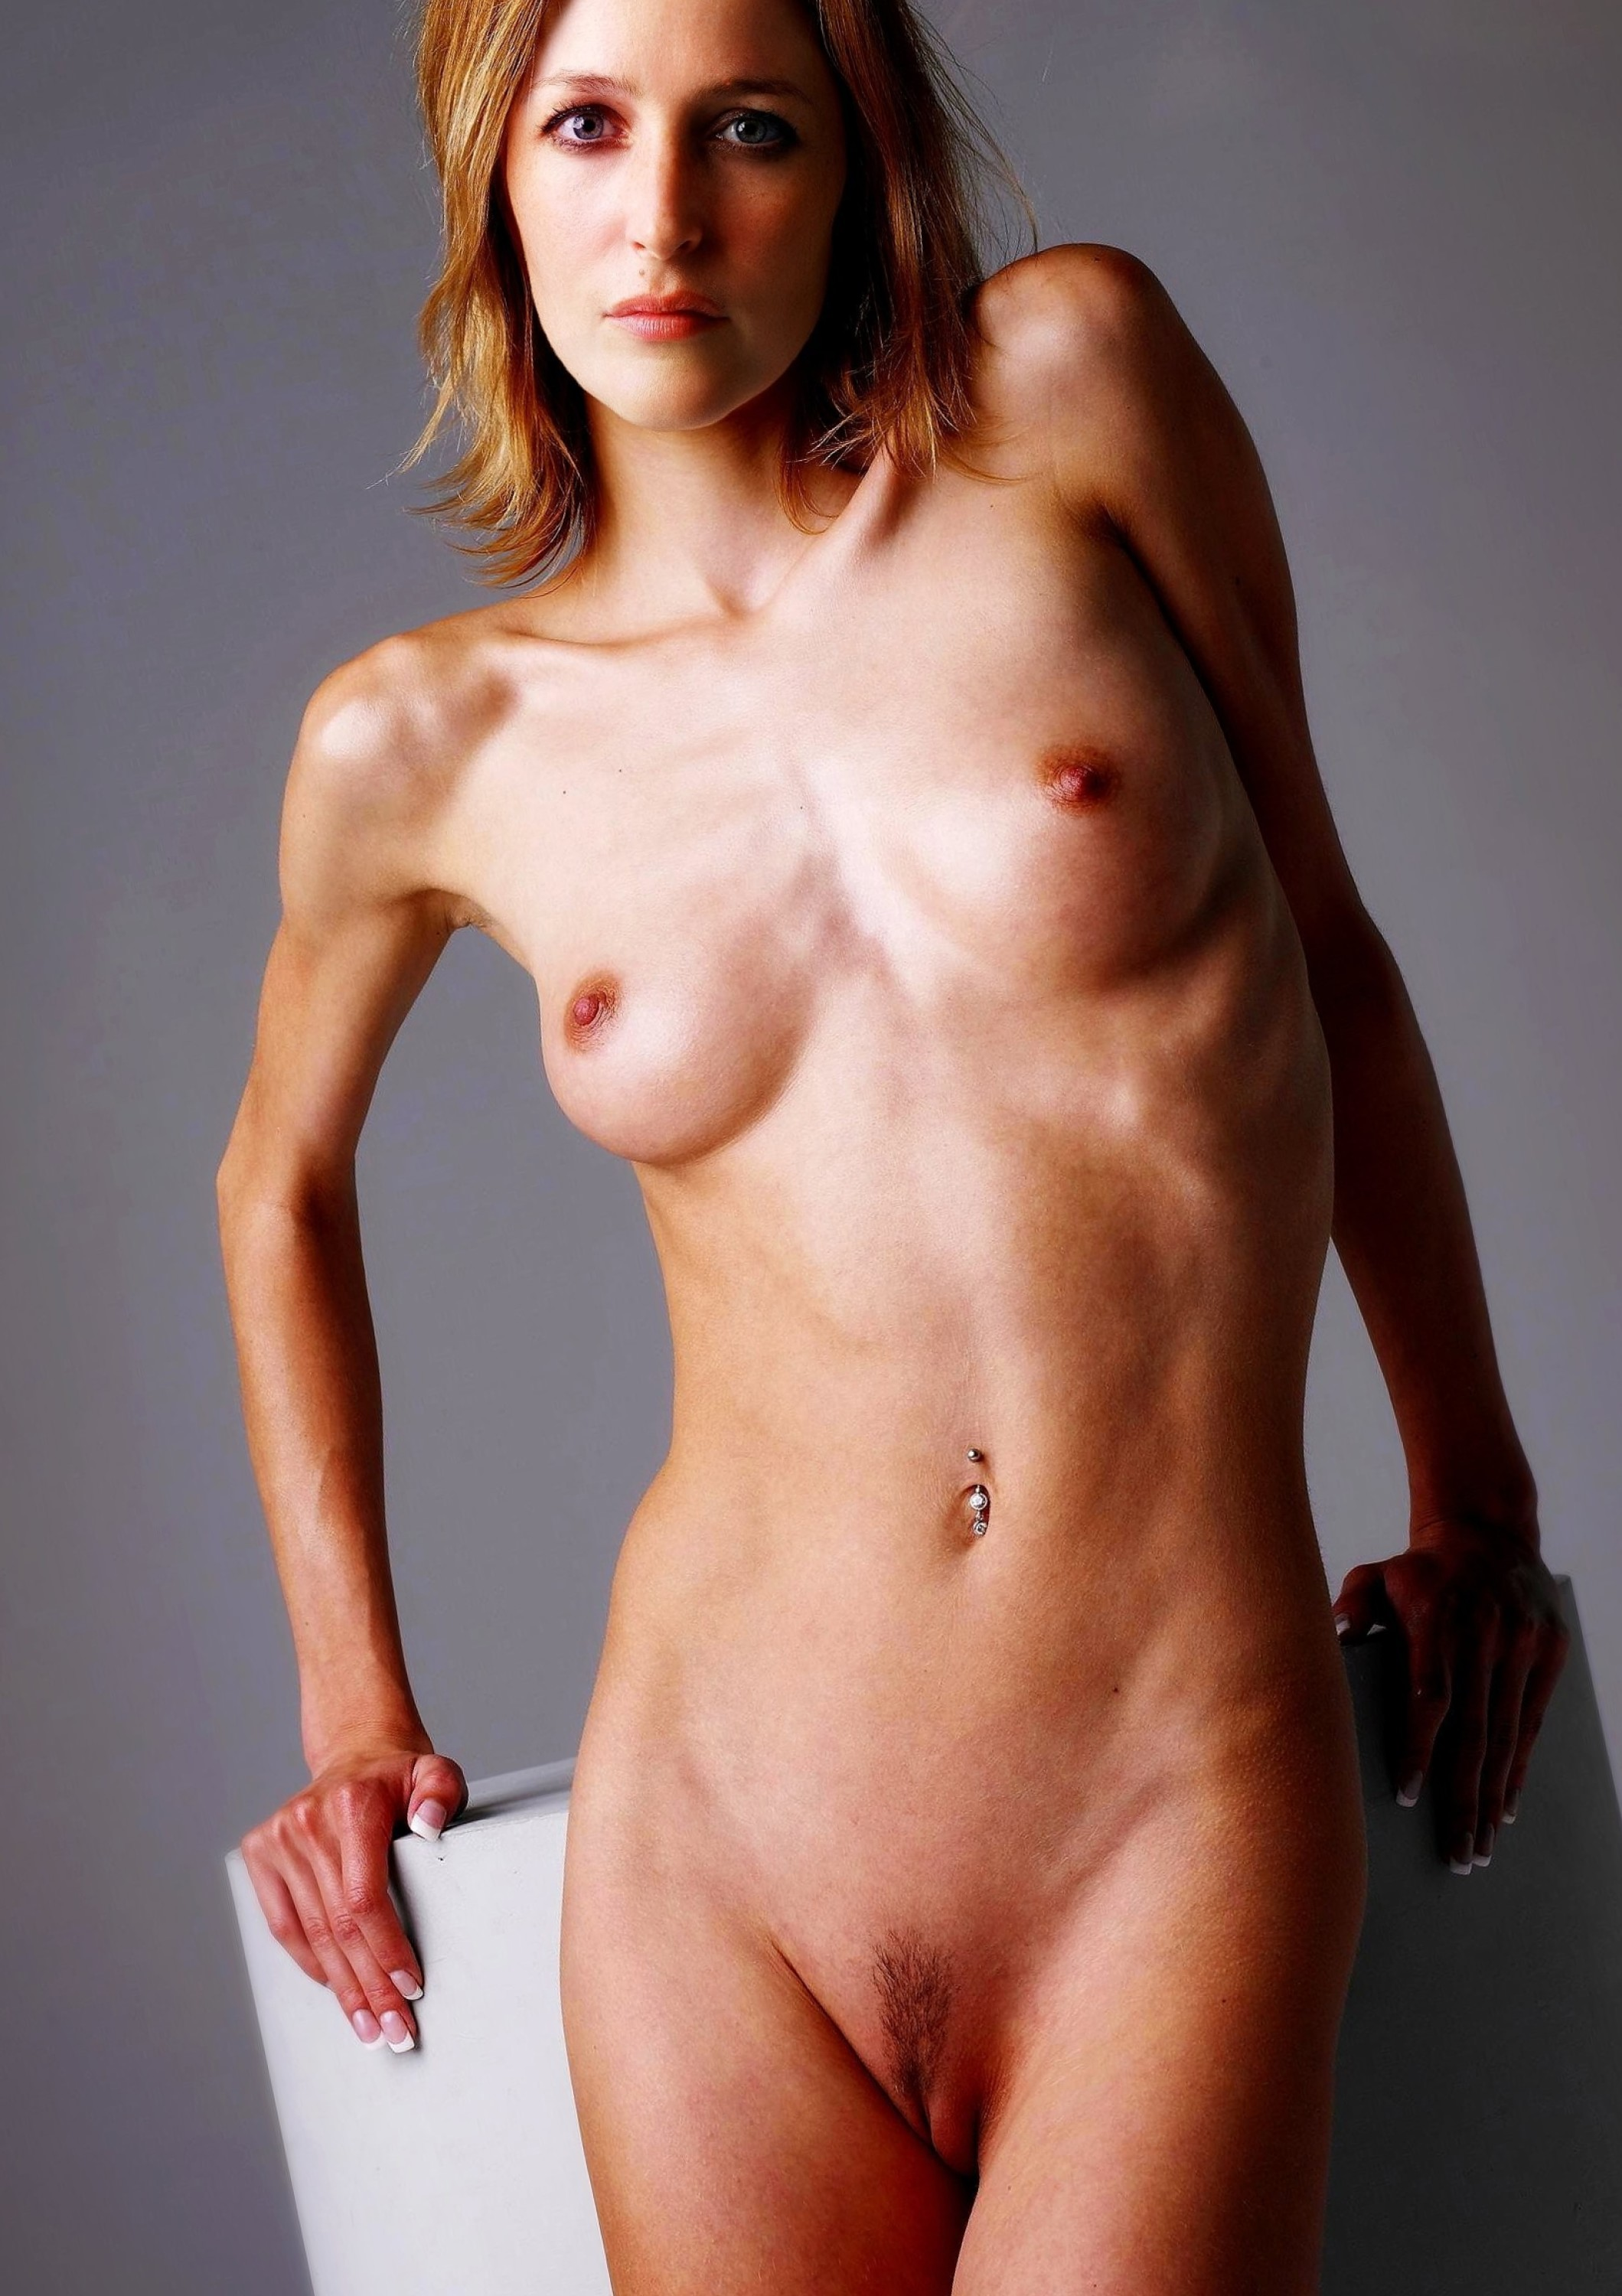 Gillian anderson hot sexe pic 190